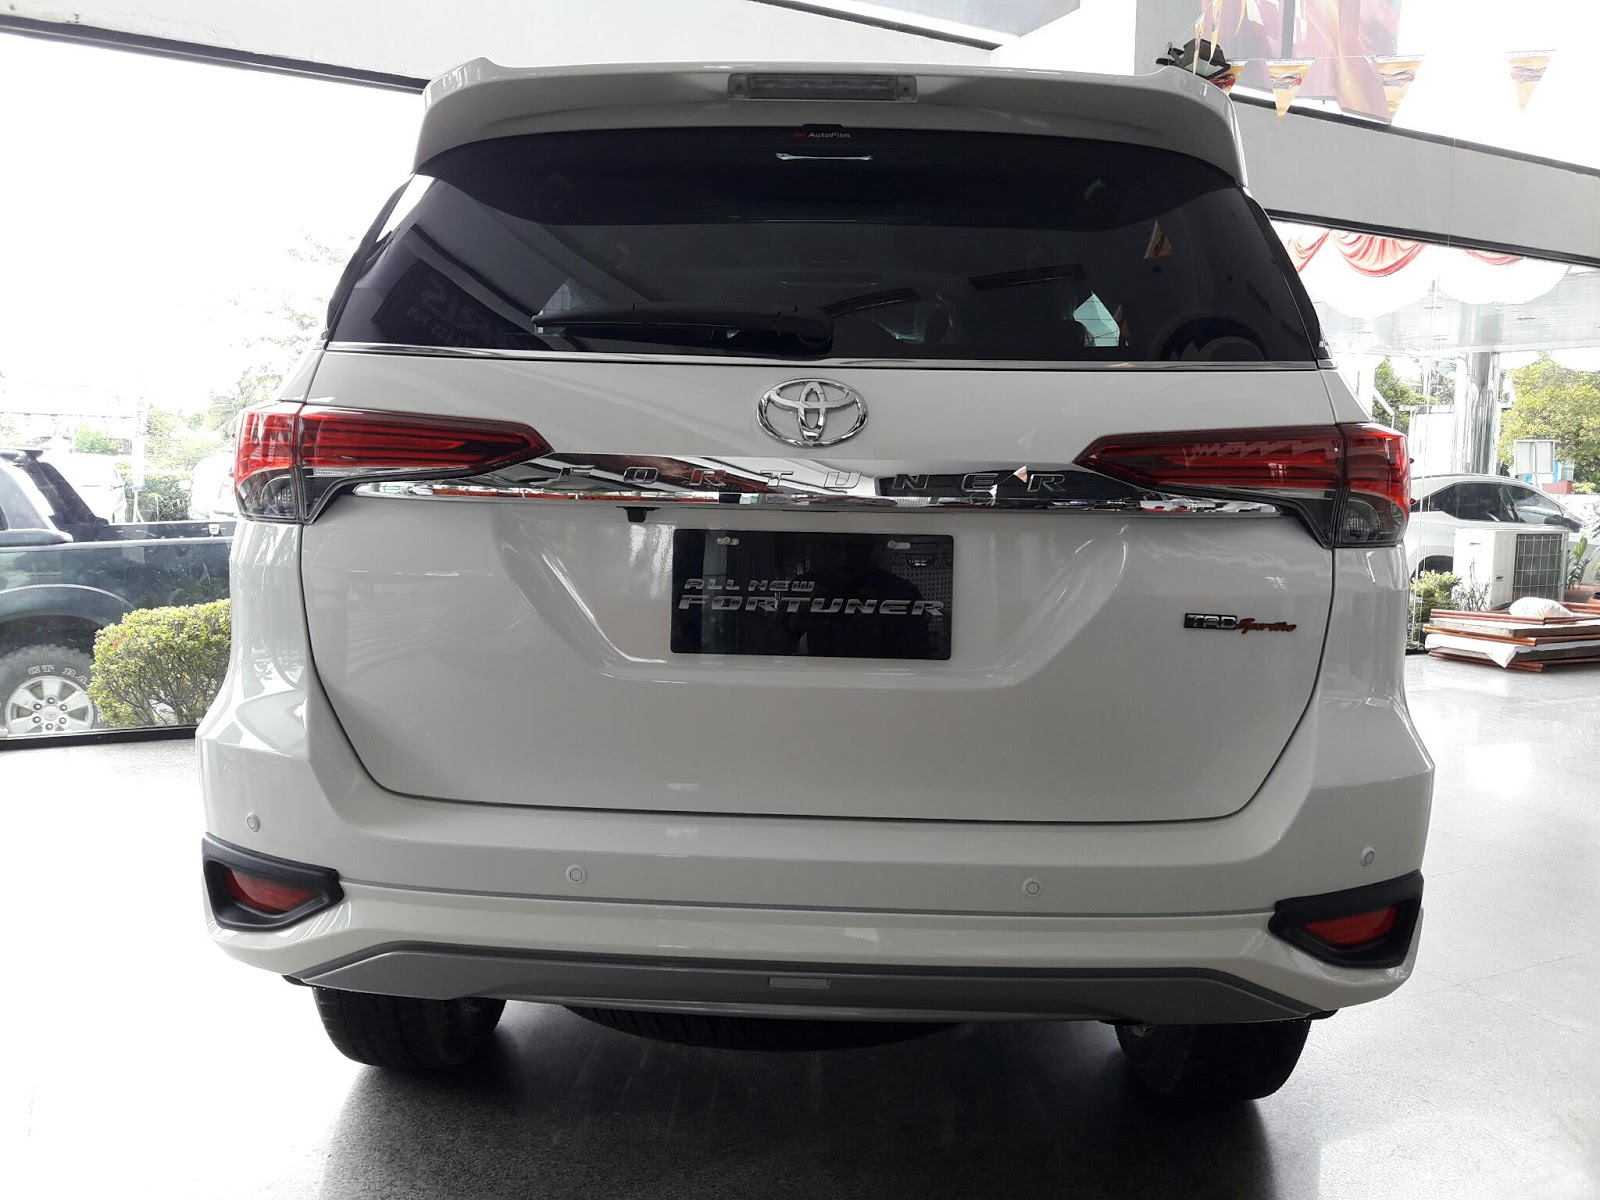 harga all new vellfire grand avanza g 2016 termurah dealer anzon toyota pontianak kalimantan